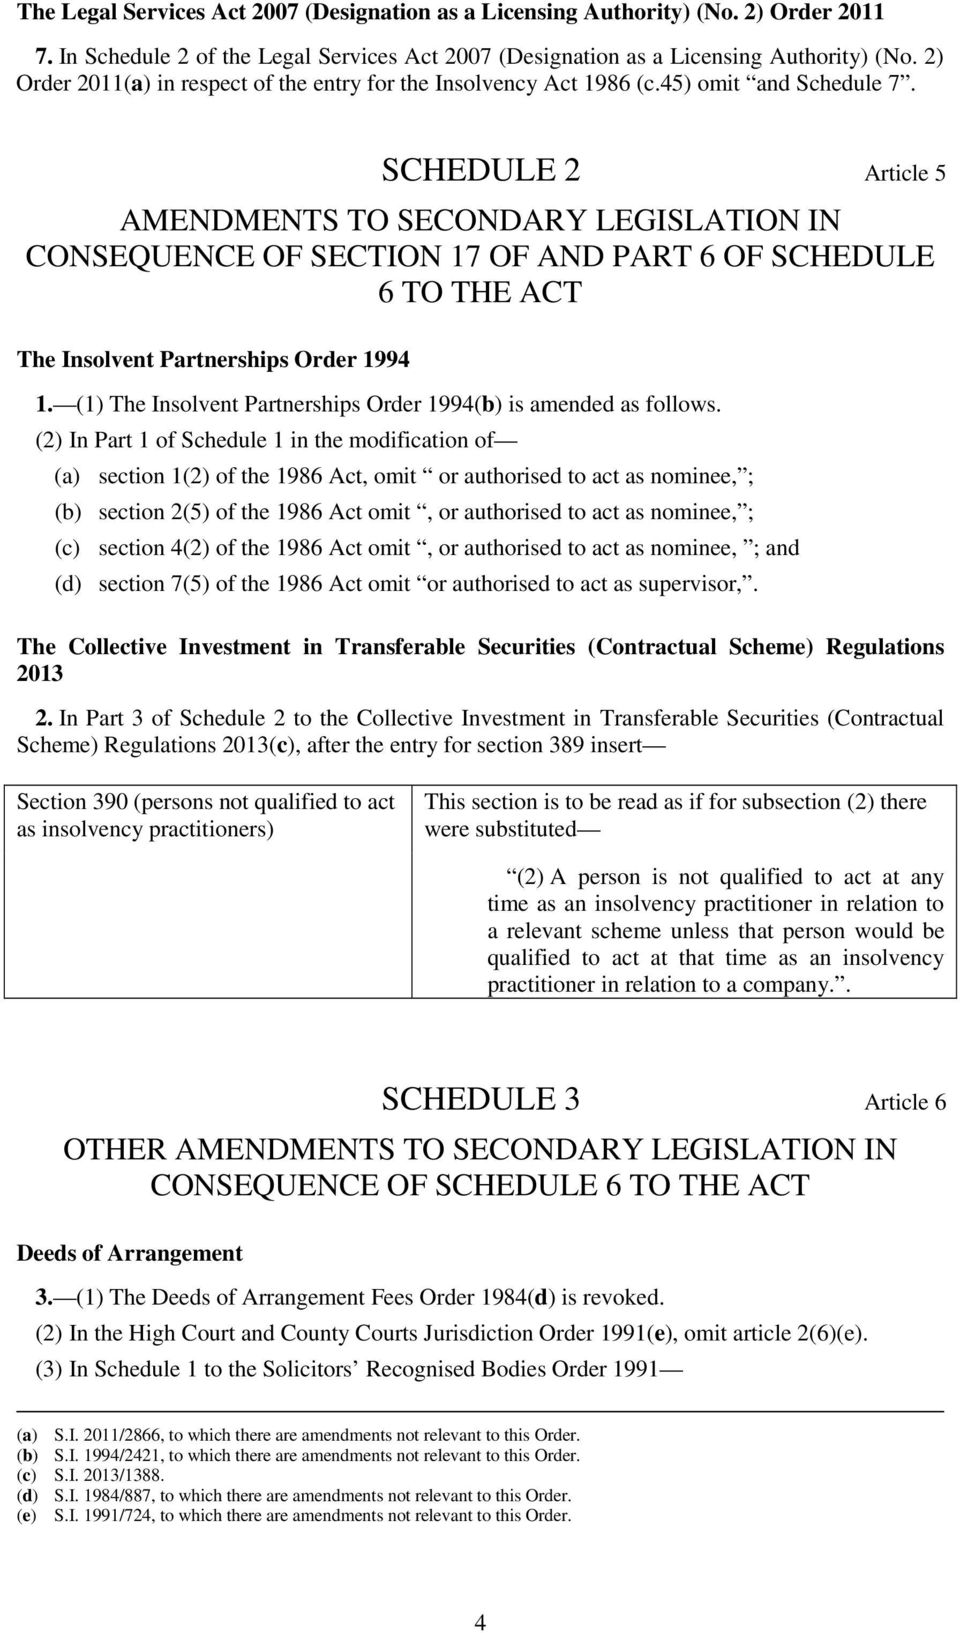 SCHEDULE 2 Article 5 AMENDMENTS TO SECONDARY LEGISLATION IN CONSEQUENCE OF SECTION 17 OF AND PART 6 OF SCHEDULE 6 TO THE ACT The Insolvent Partnerships Order 1994 1.